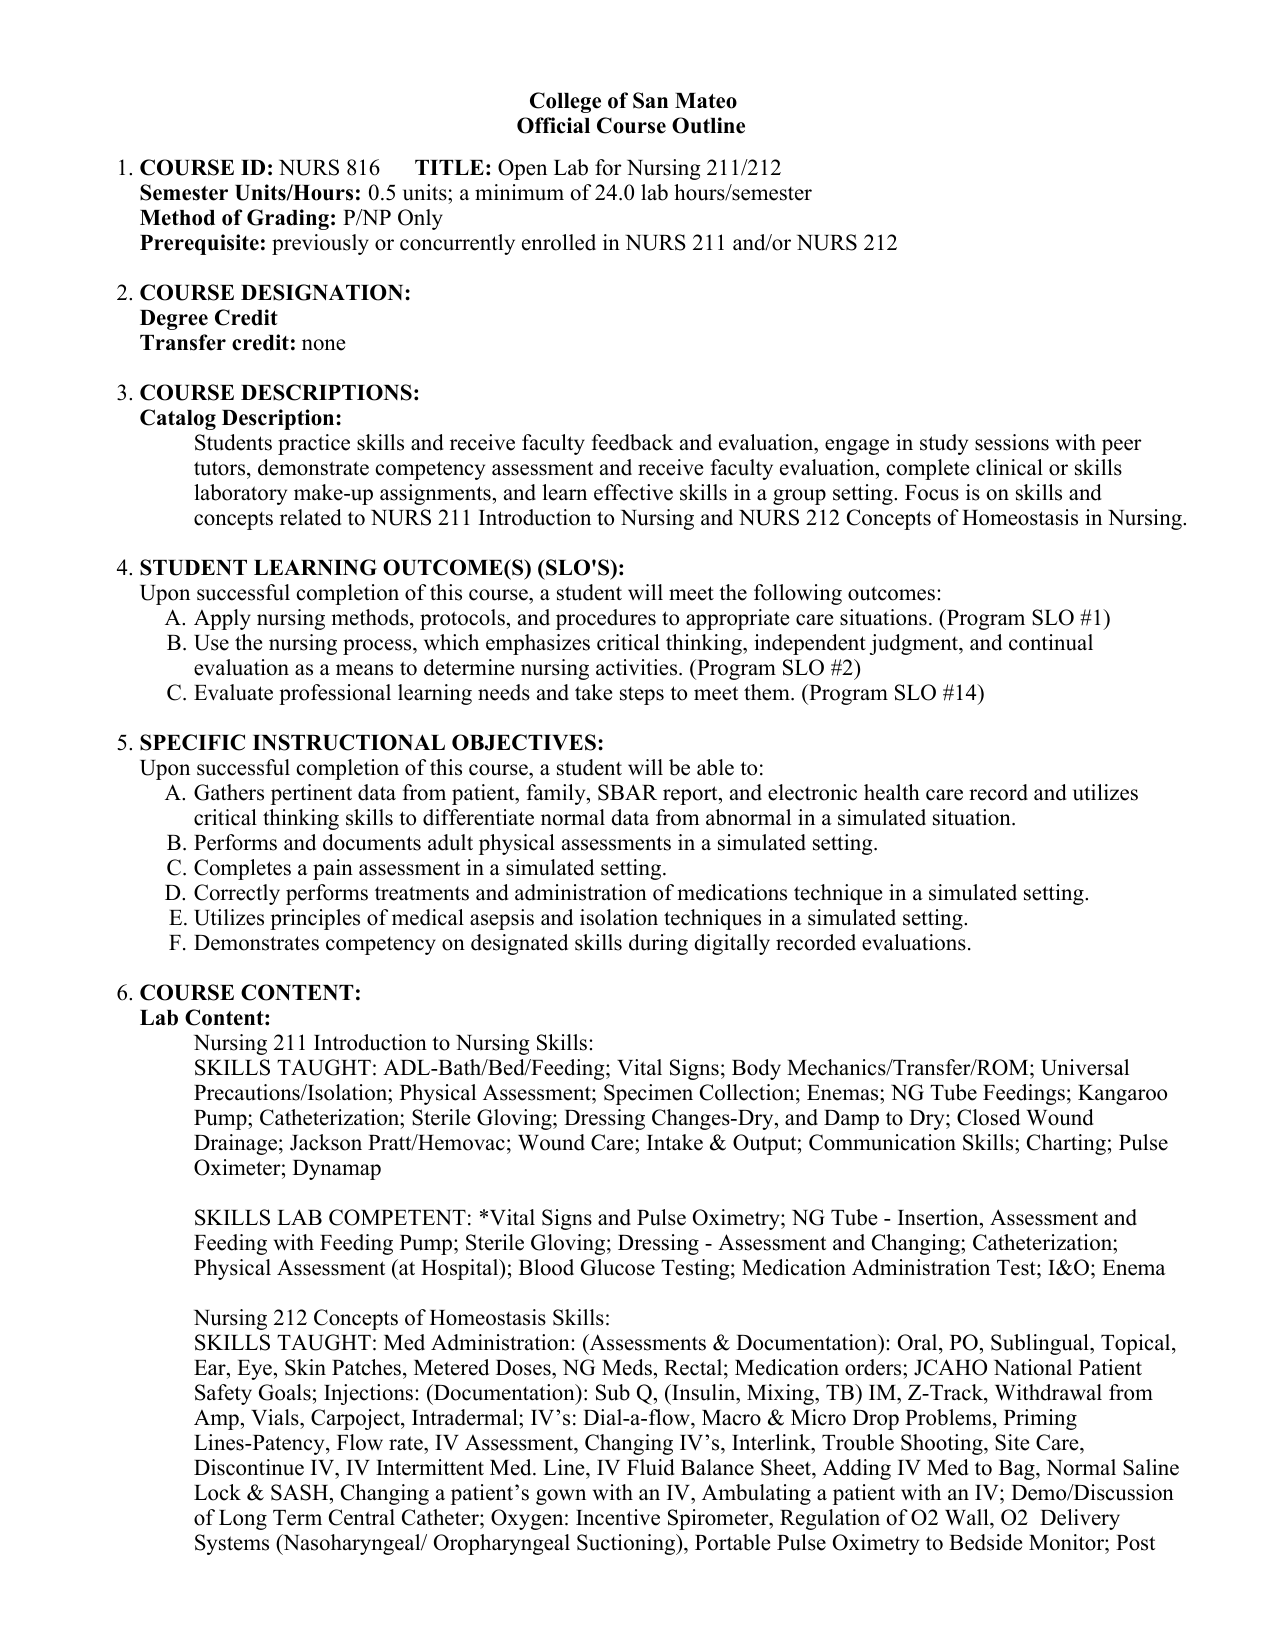 College of San Mateo Official Course Outline COURSE ID